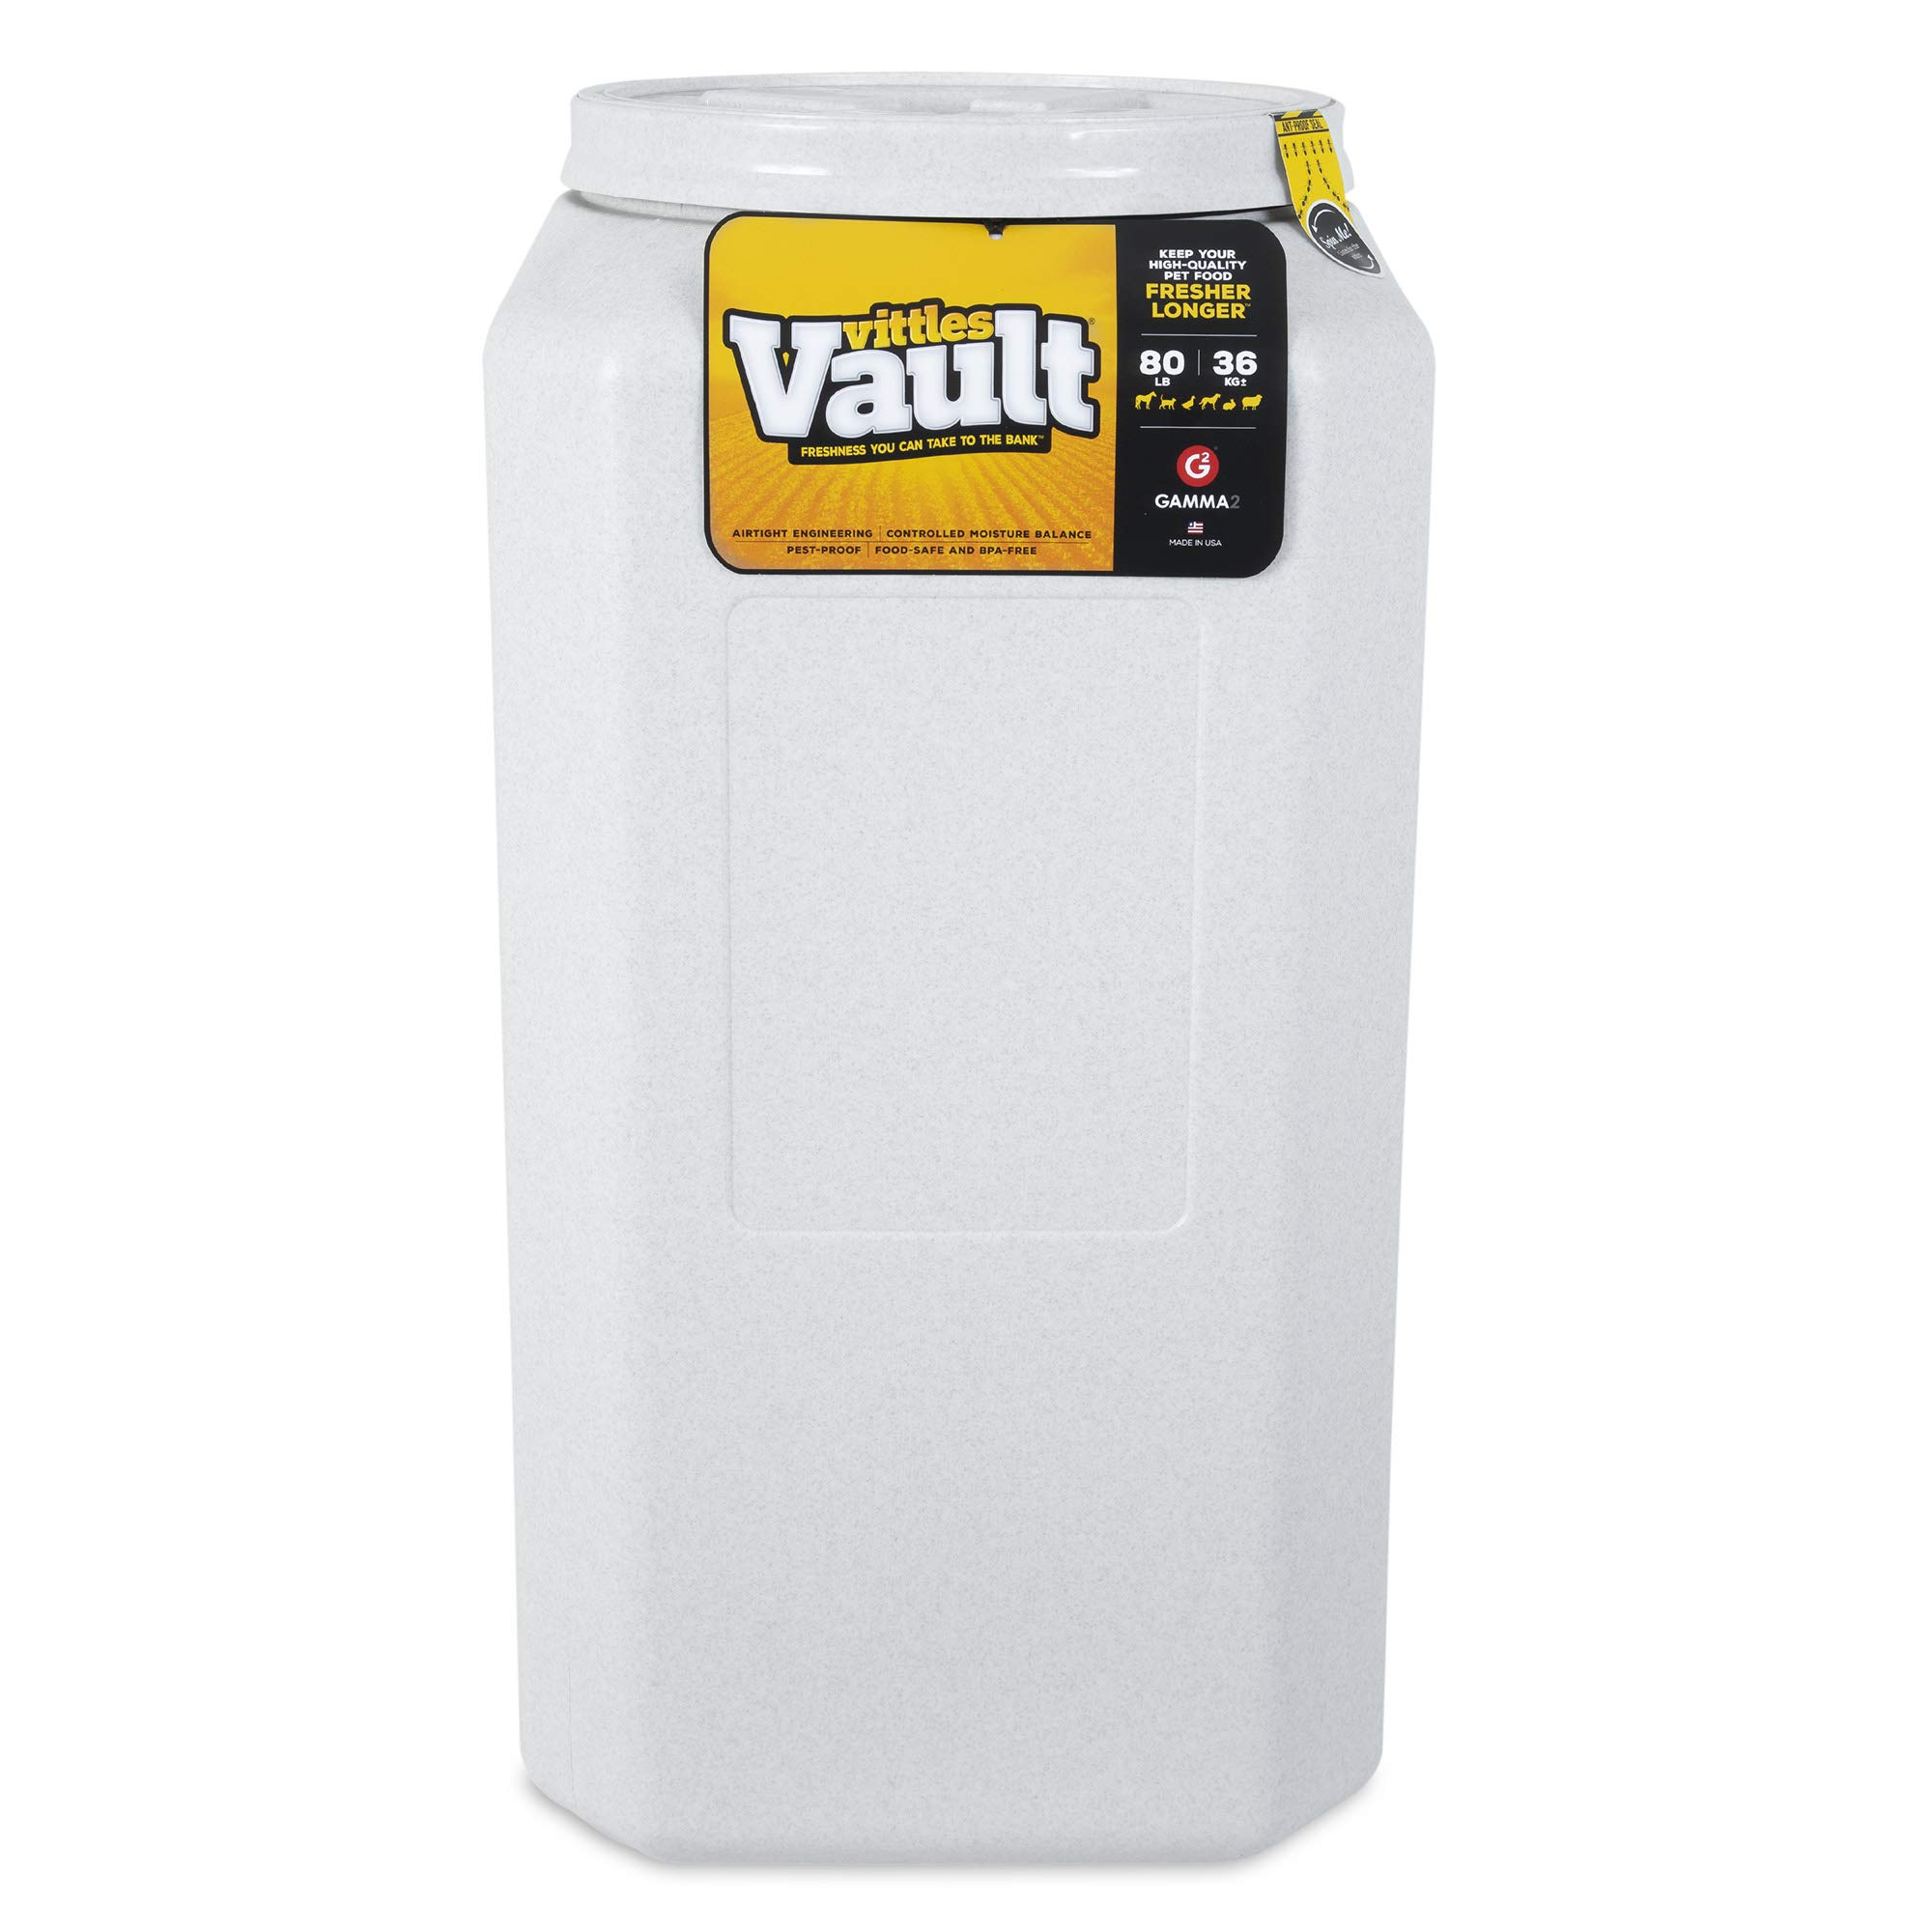 Gamma2 Vittles Vault Outback Airtight Pet Food Container, 80 Pounds